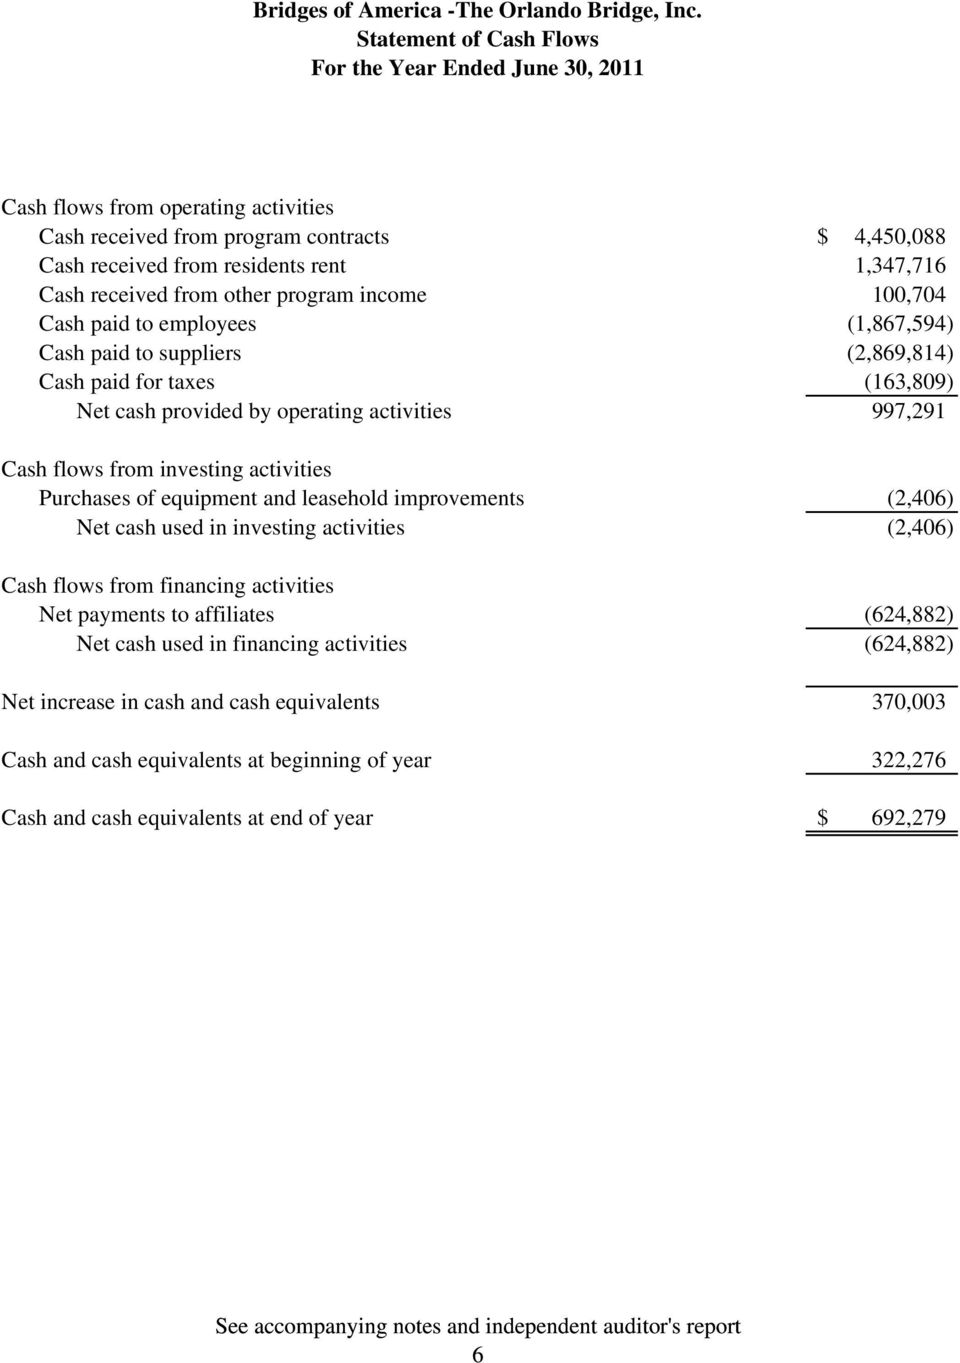 Purchases of equipment and leasehold improvements (2,406) Net cash used in investing activities (2,406) Cash flows from financing activities Net payments to affiliates (624,882) Net cash used in